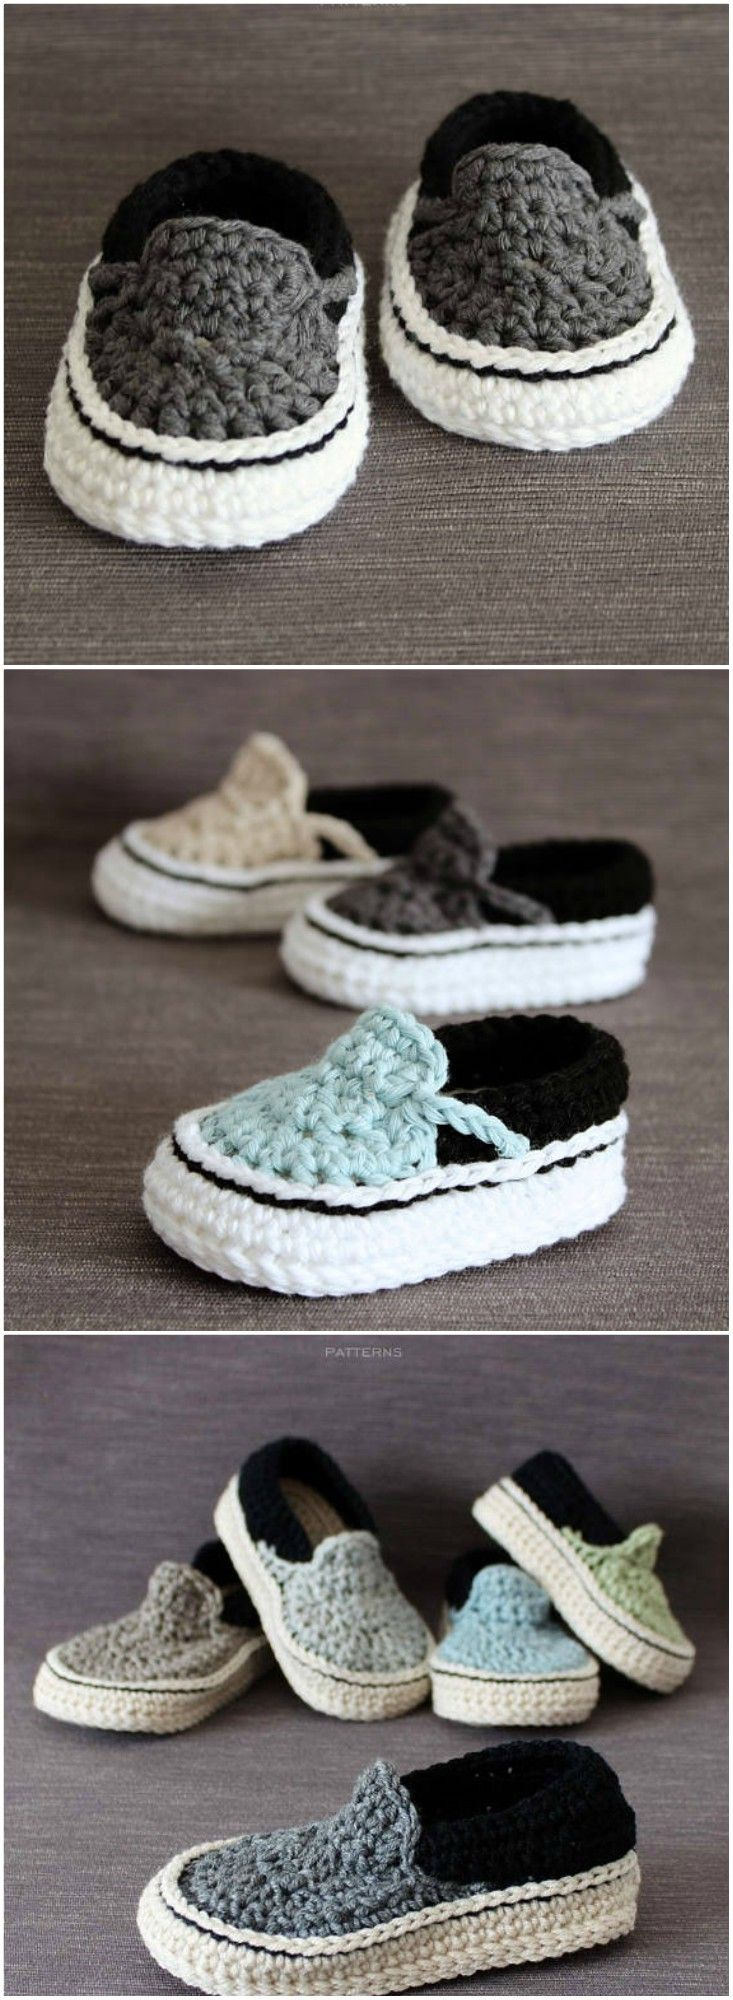 Crochet Baby Vans Pattern Cutest Ideas